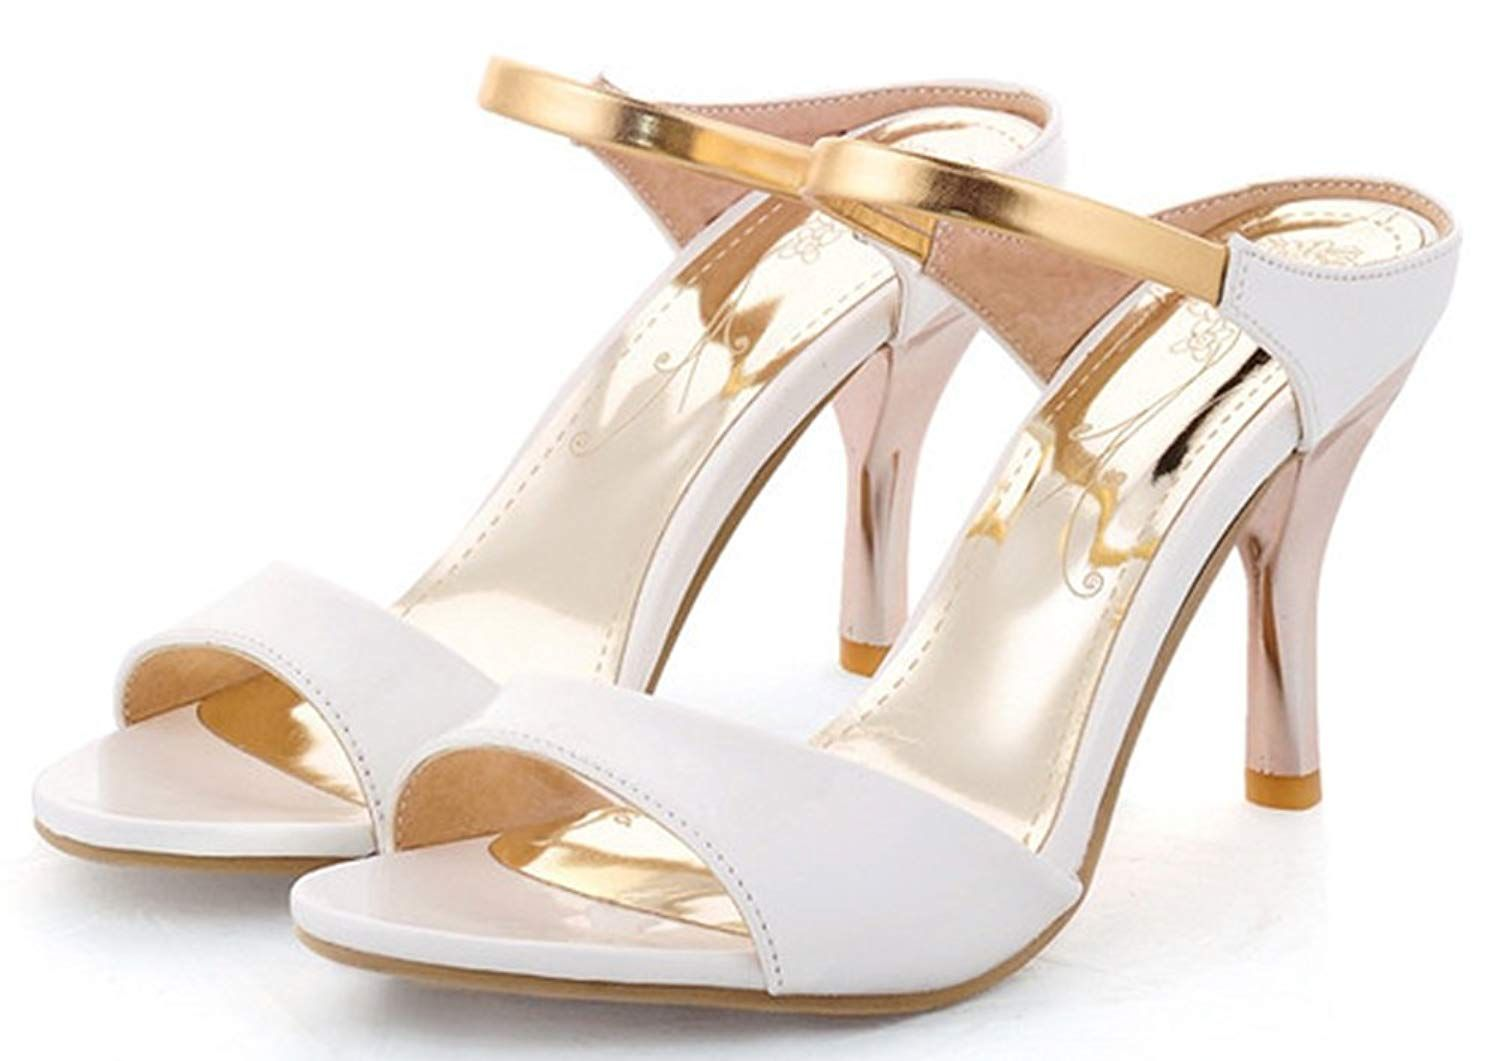 98e39061e38 IDIFU Women's Unique Ankle Strap Stiletto Kitten Heel Sandals Slip On Open  Toe Shoes * Very nice of your presence to drop by to visit the picture.